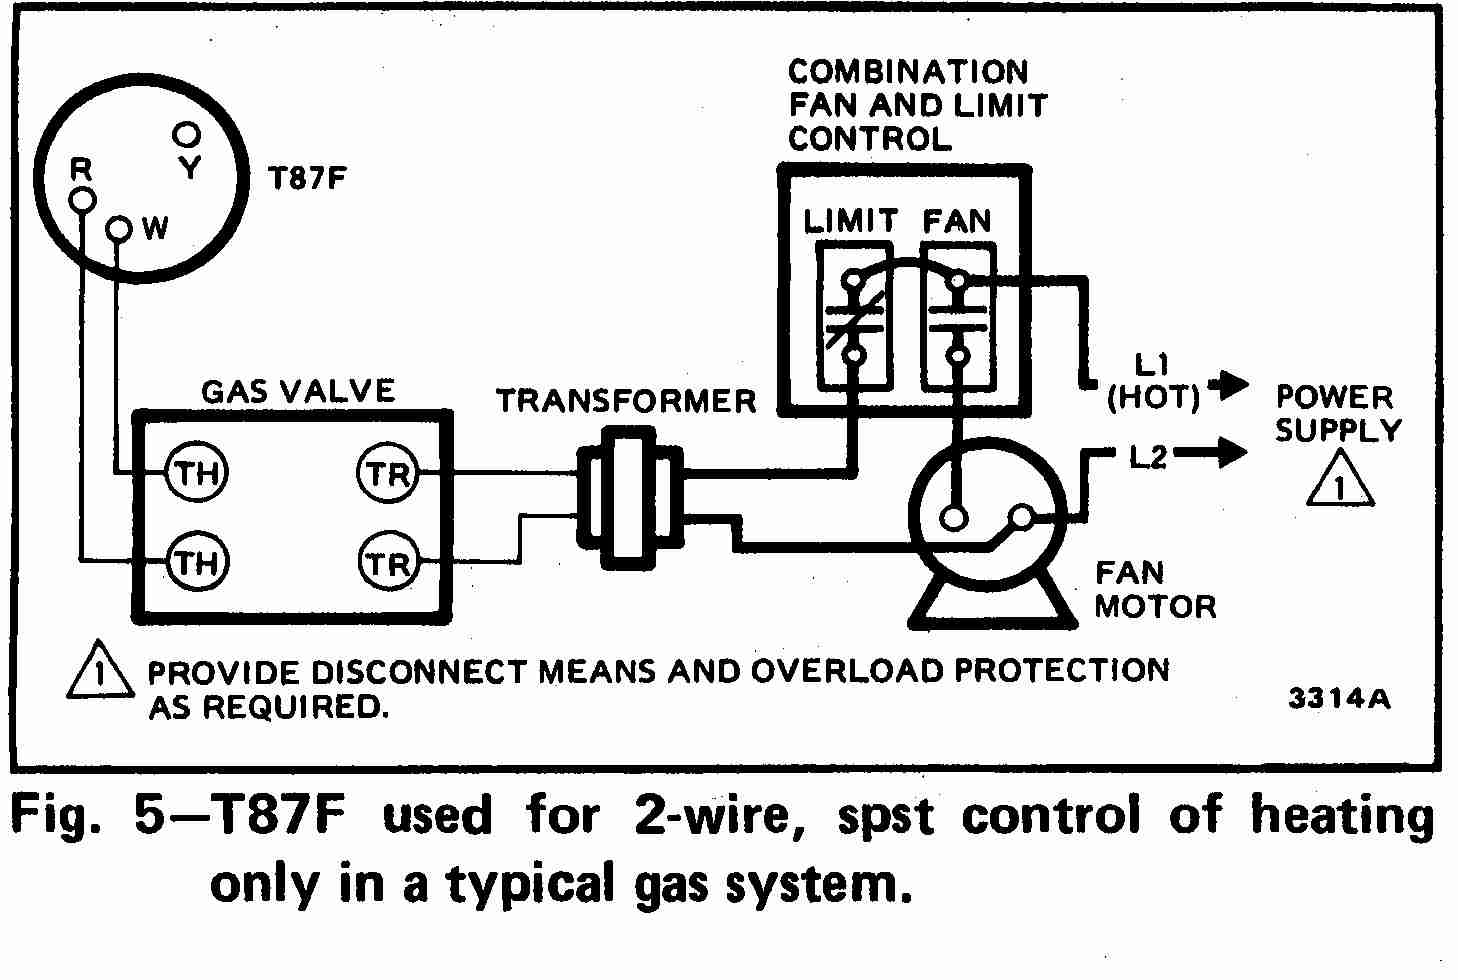 TT_T87F_0002_2Wg_DJF room thermostat wiring diagrams for hvac systems honeywell aquastat wiring diagram at bayanpartner.co